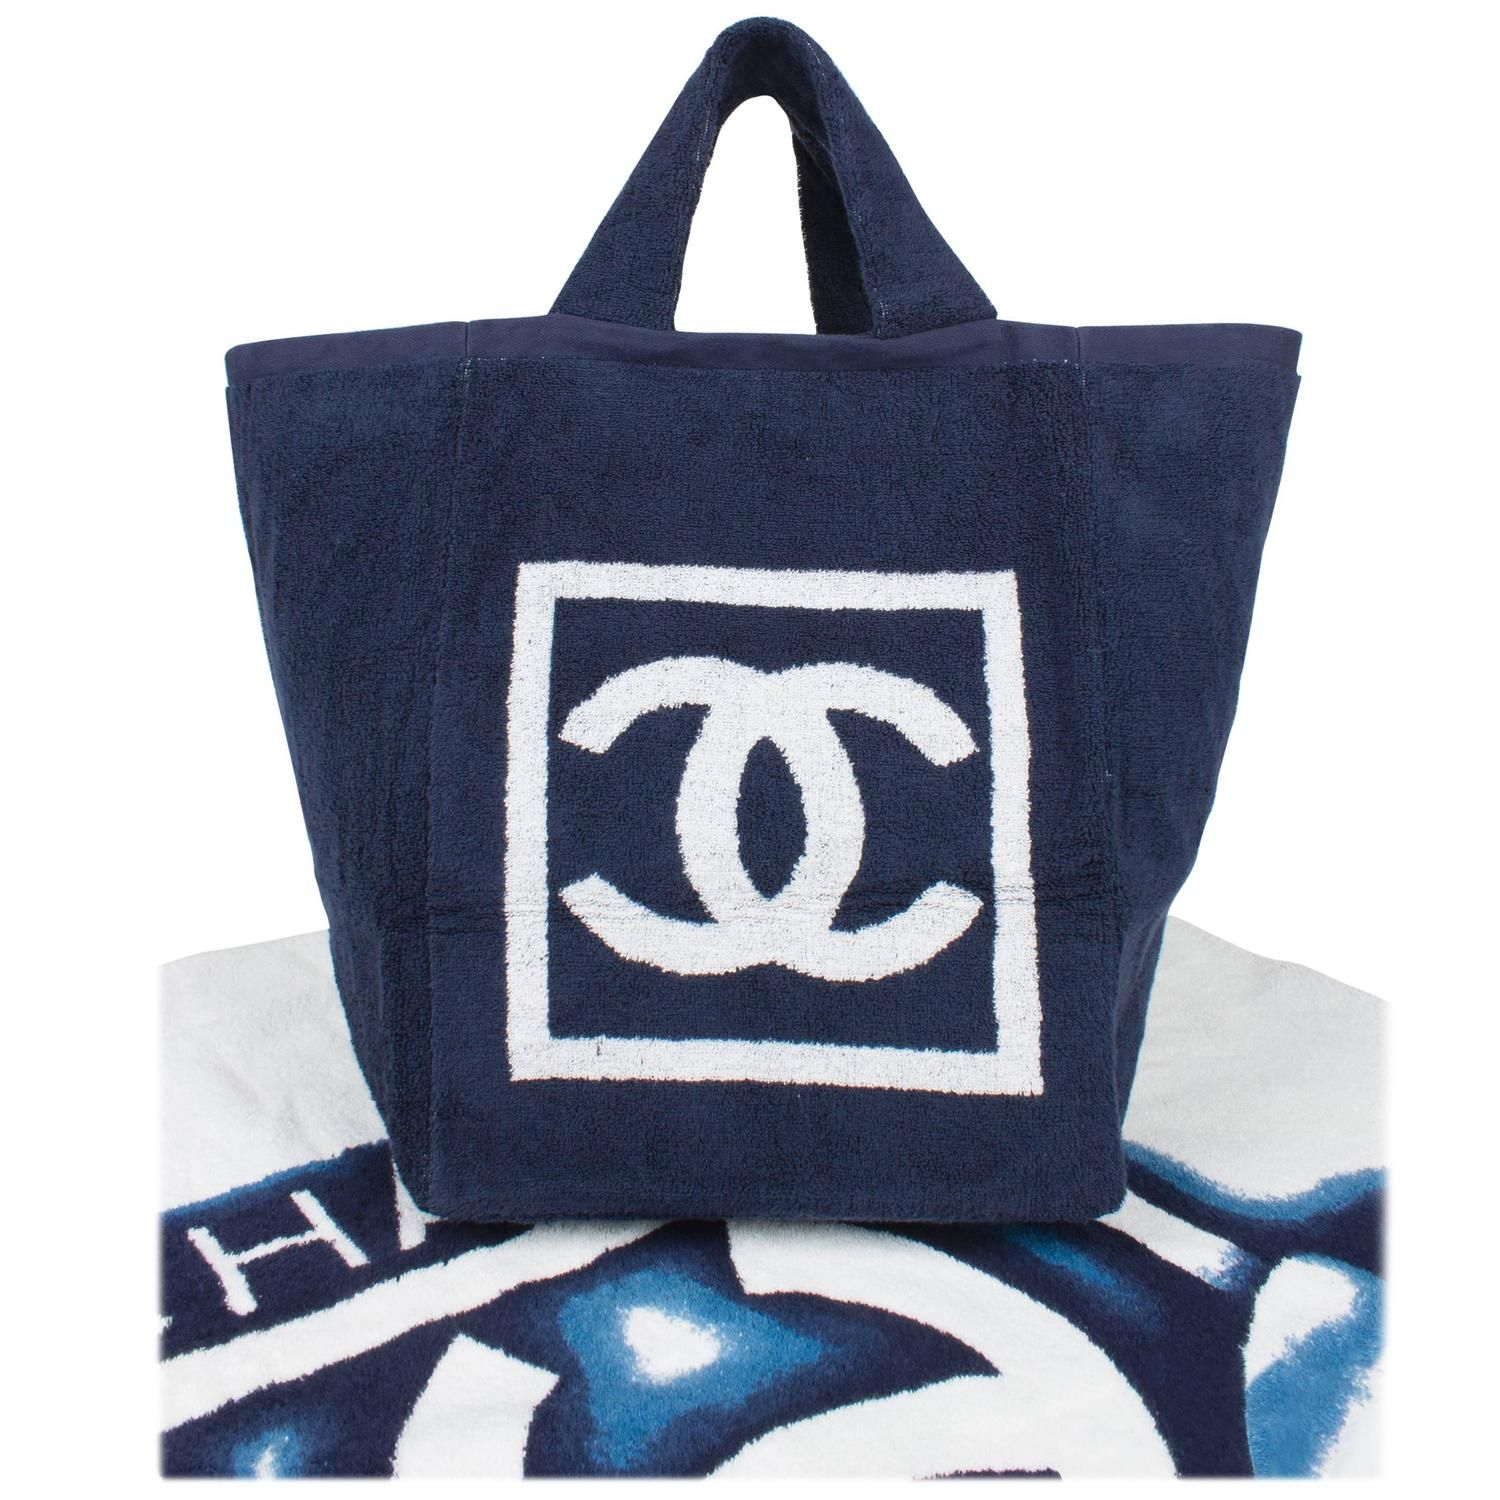 2c4b67a7312b Chanel Beach Bag and Towel - navy blue/white terry cloth in 2019 ...